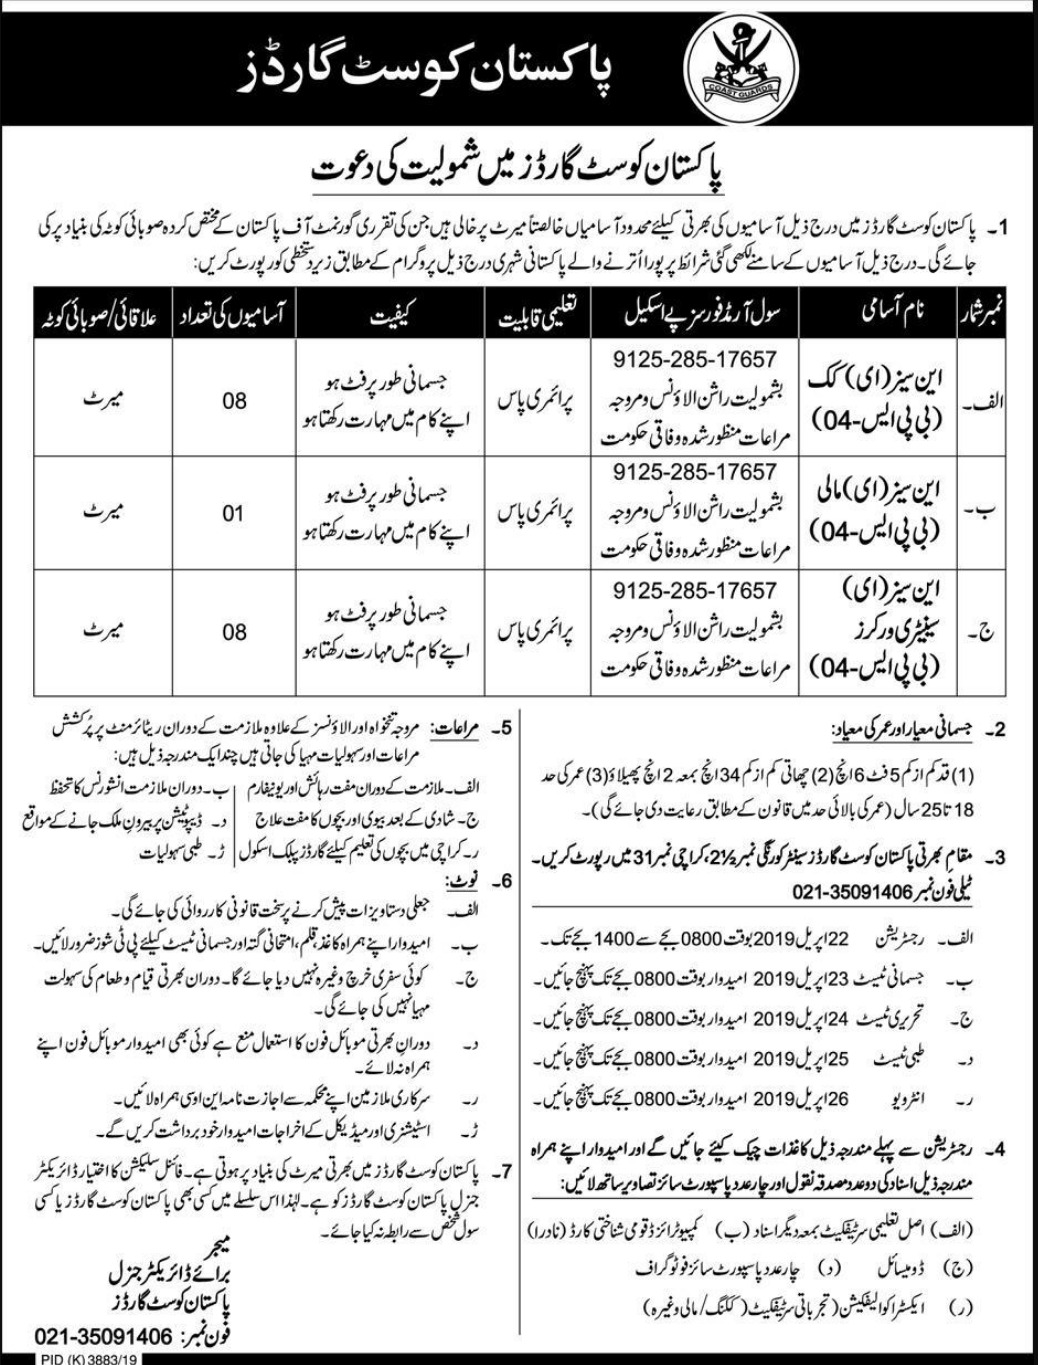 Pakistan Coast Guards Jobs 2019 Latest